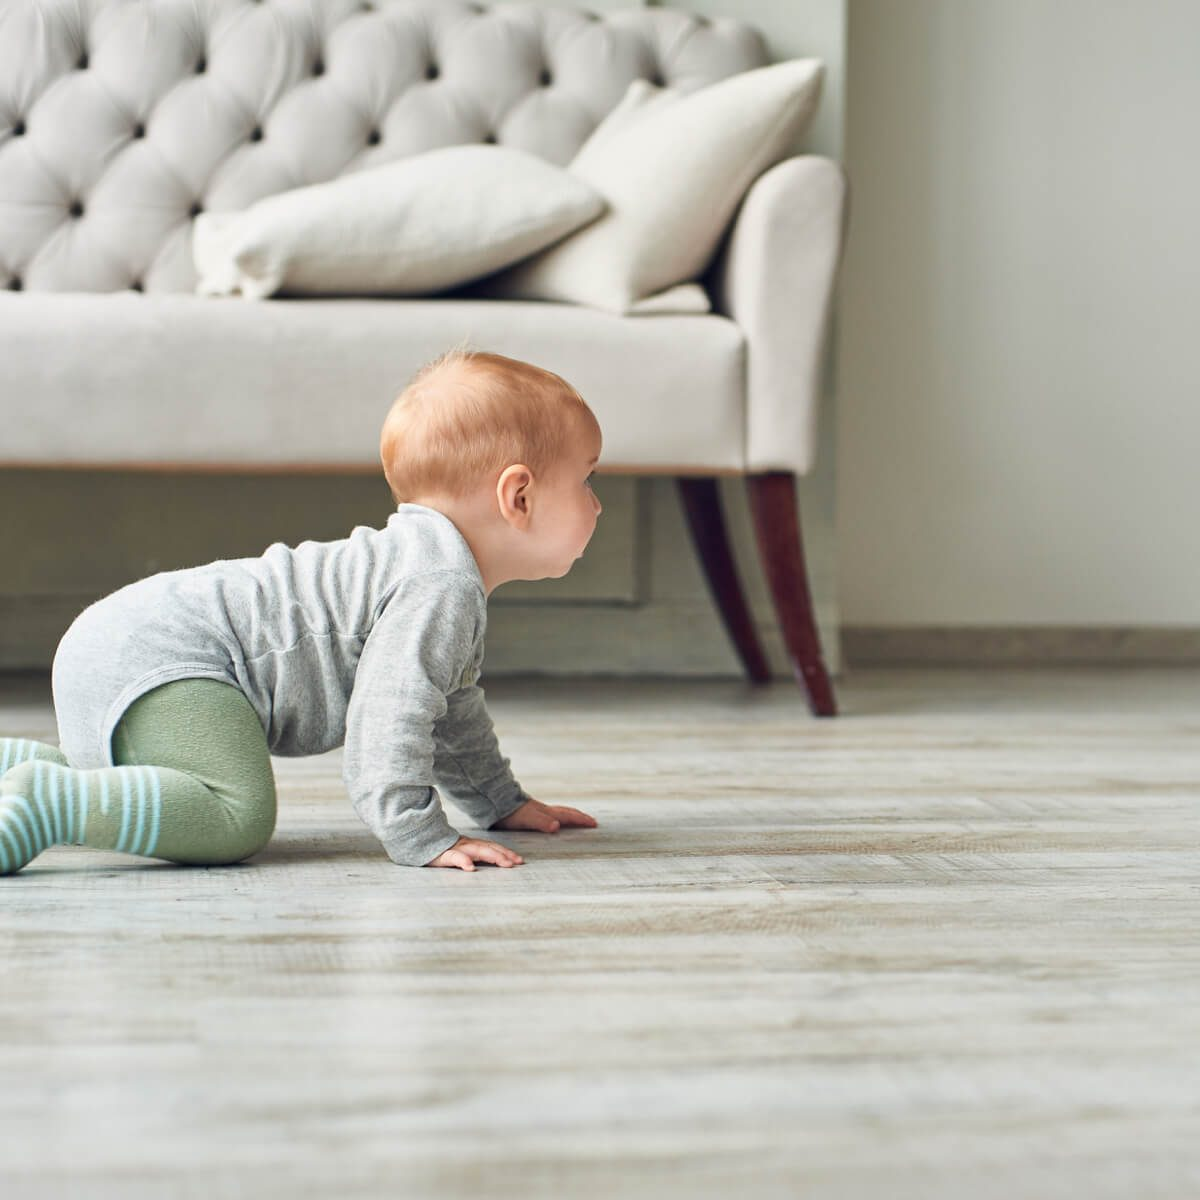 baby on luxury vinyl floor | Great Western Flooring Co.